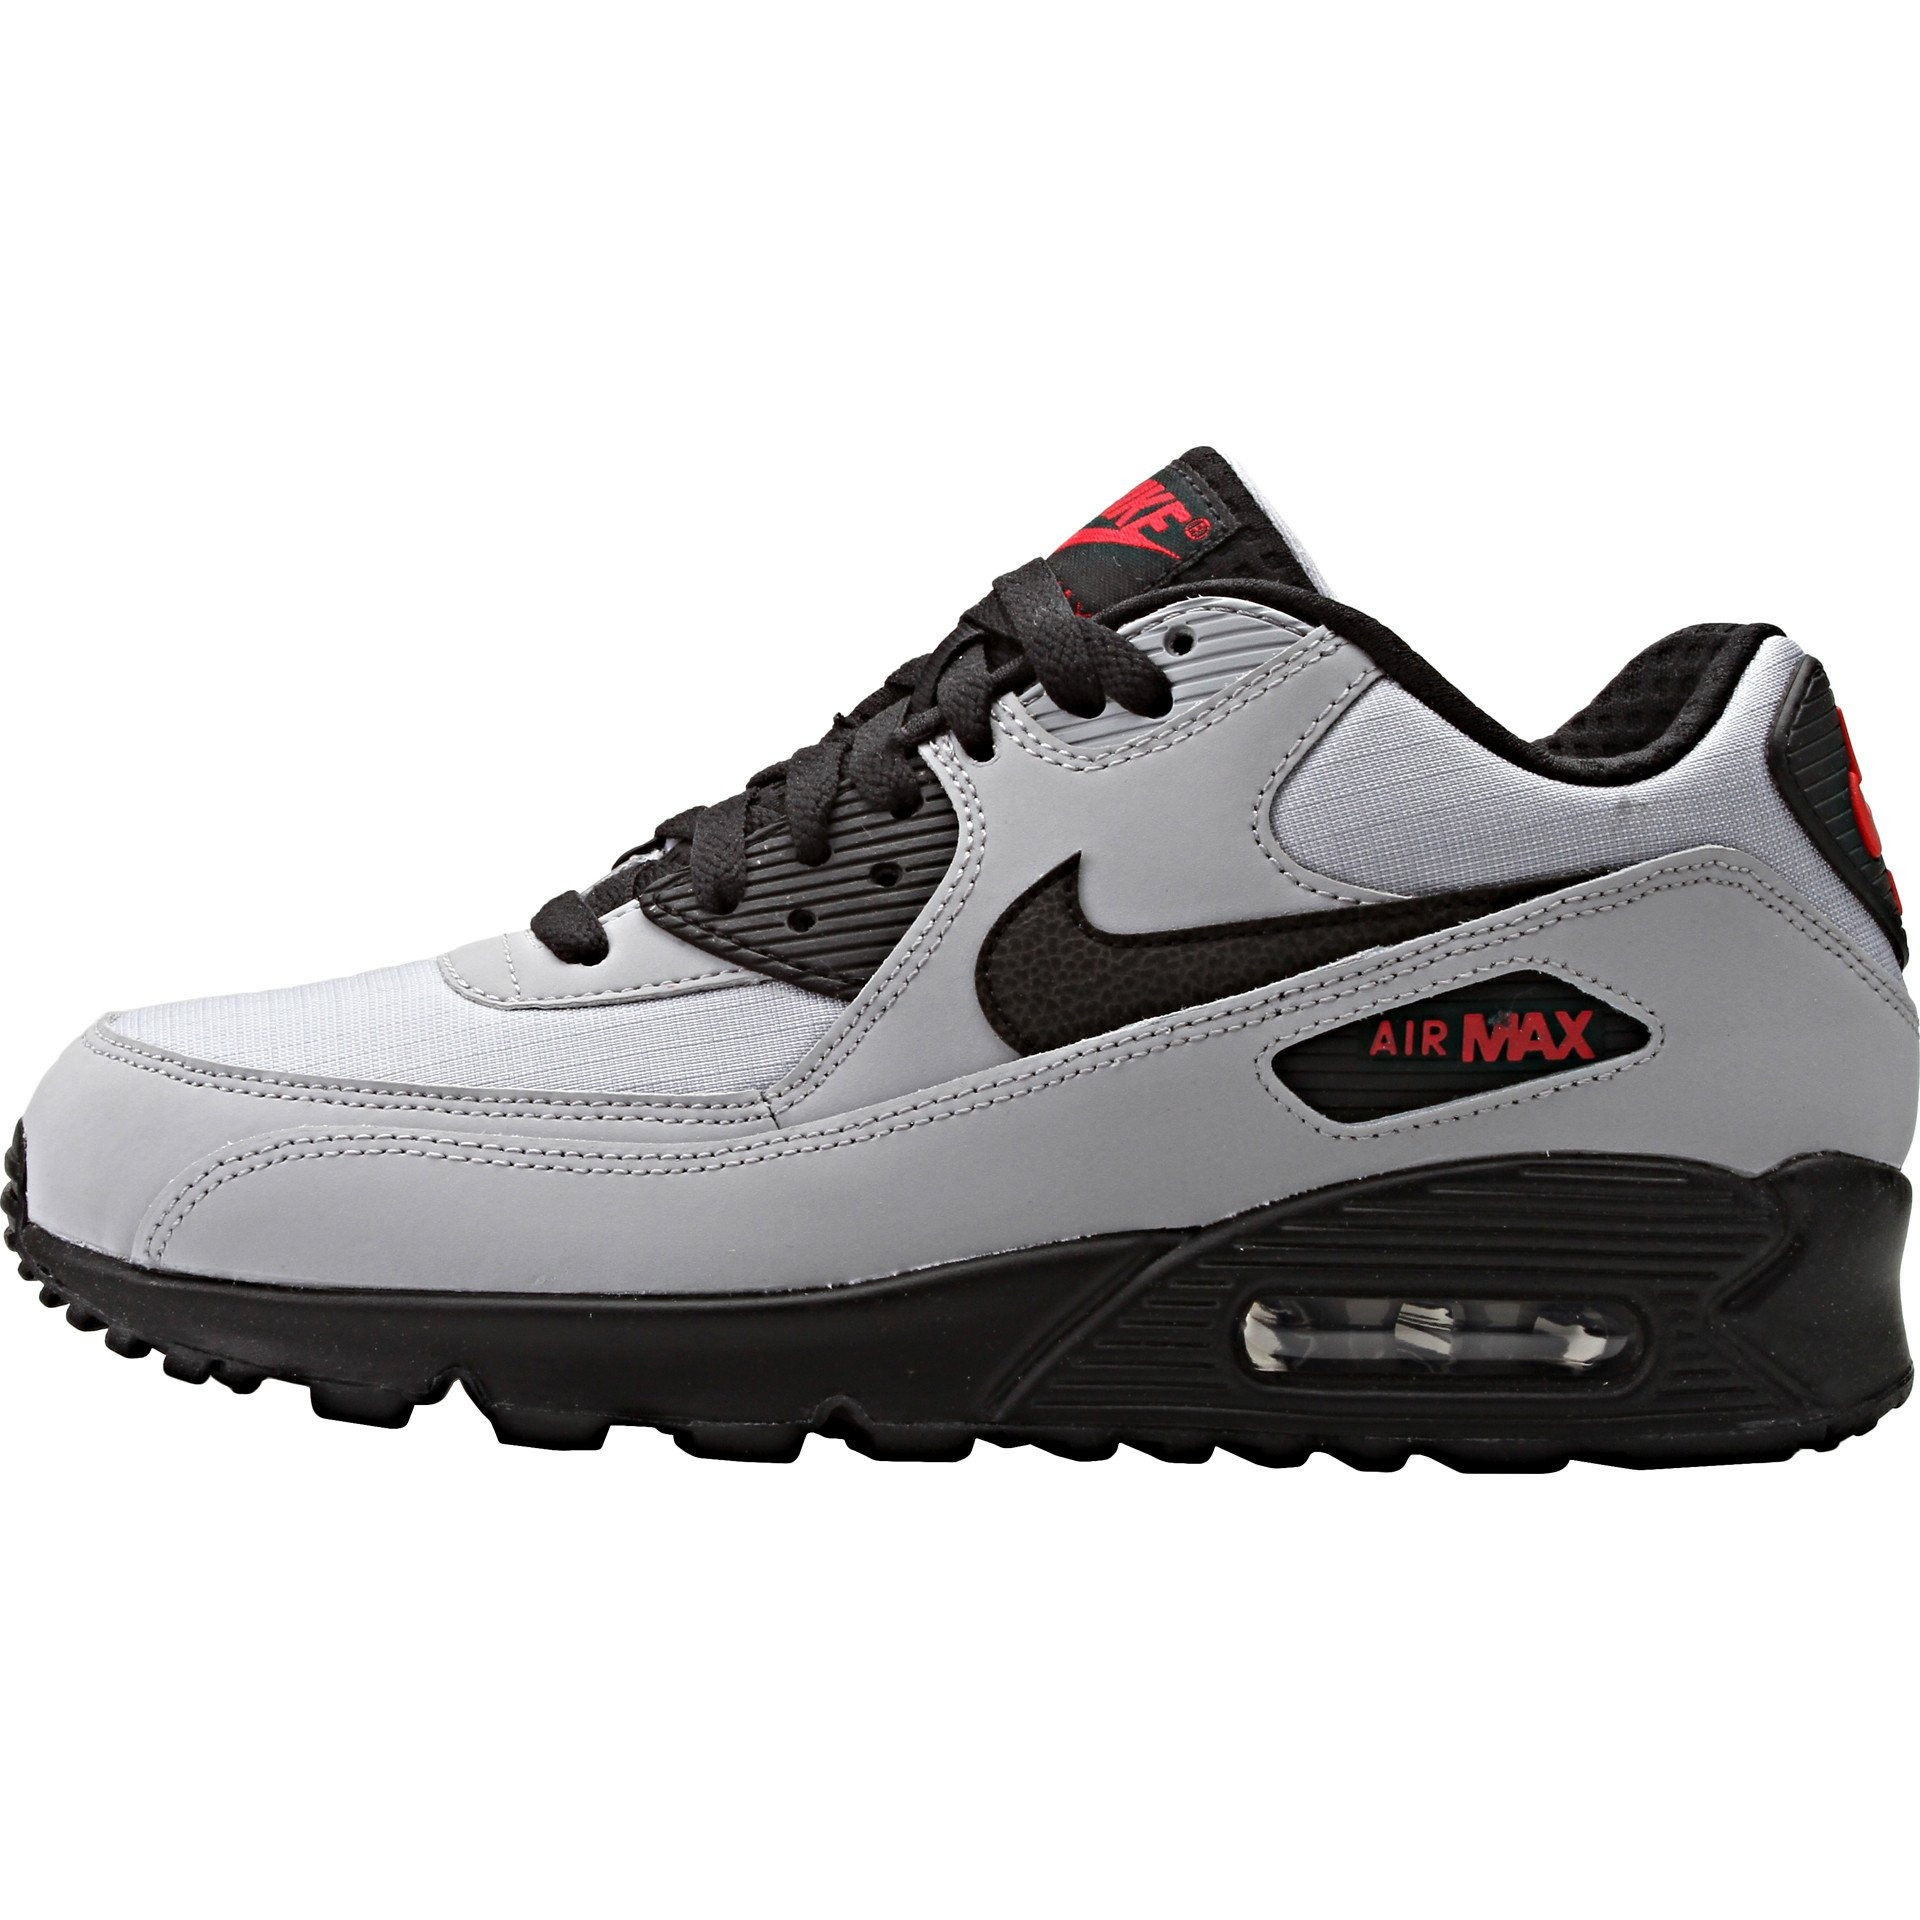 Air Max 90 Essential Impresionante Nike Air Max 90 Essential Grey Black Red Lanarkunitedfc Of 36  Adorable Air Max 90 Essential